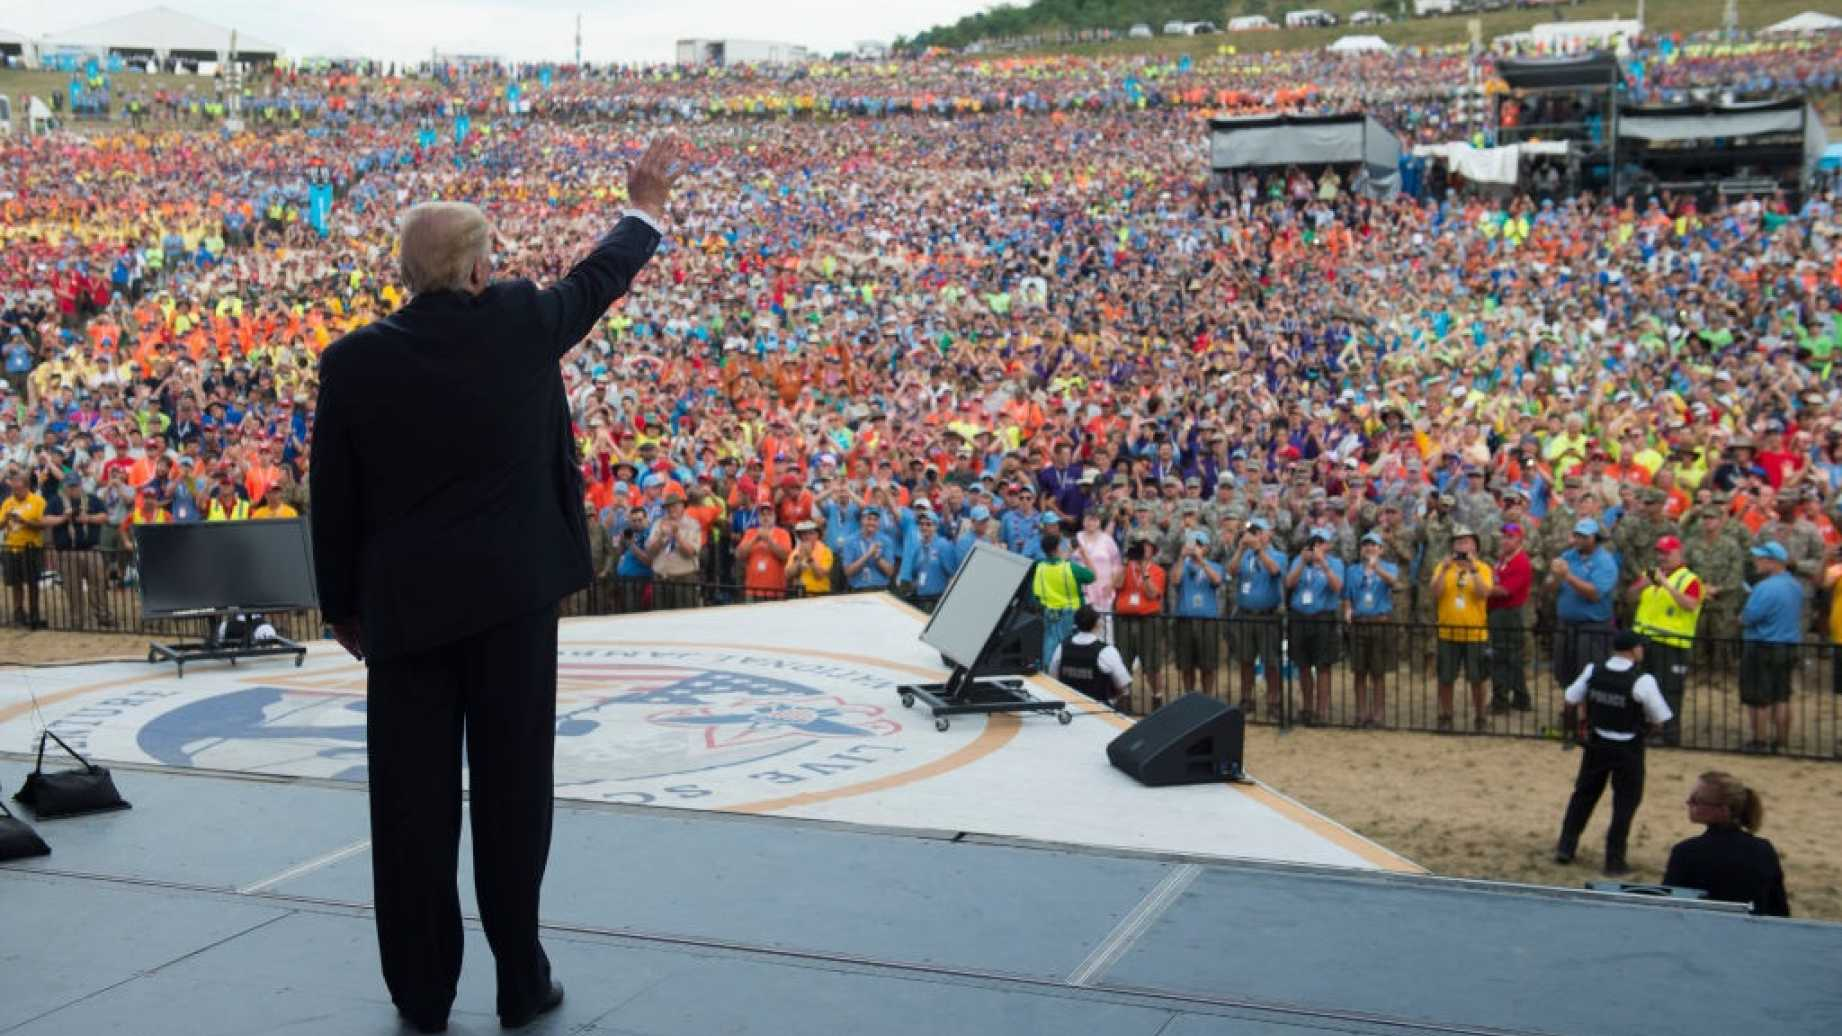 The Boy Scout's Apology for Trump's Speech is Too Little Too Late 16